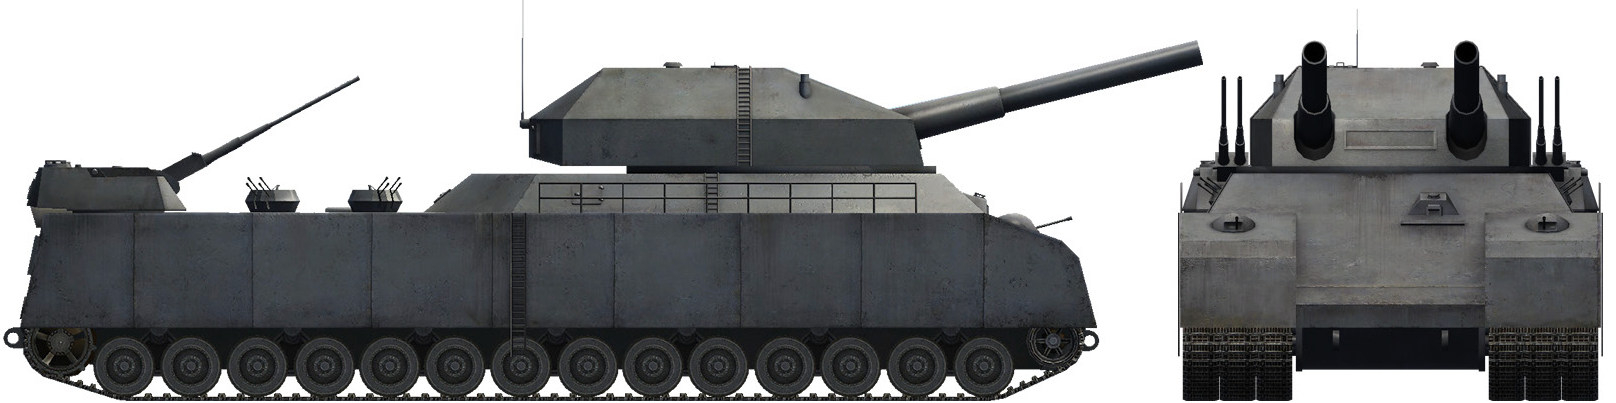 Ratte_8.png